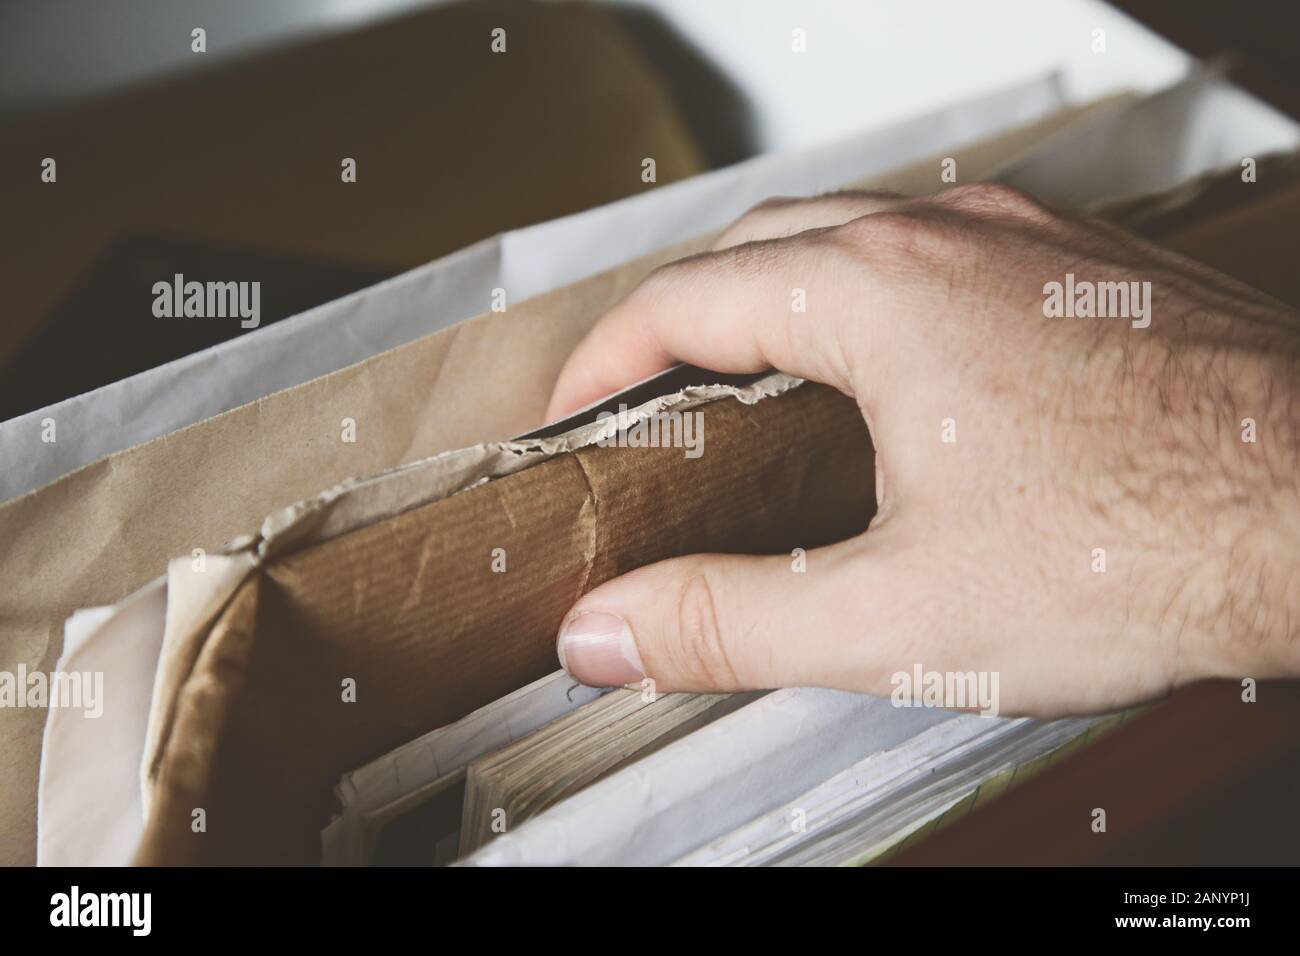 Closeup shot of a person grabbing cardboard out of a box Stock Photo